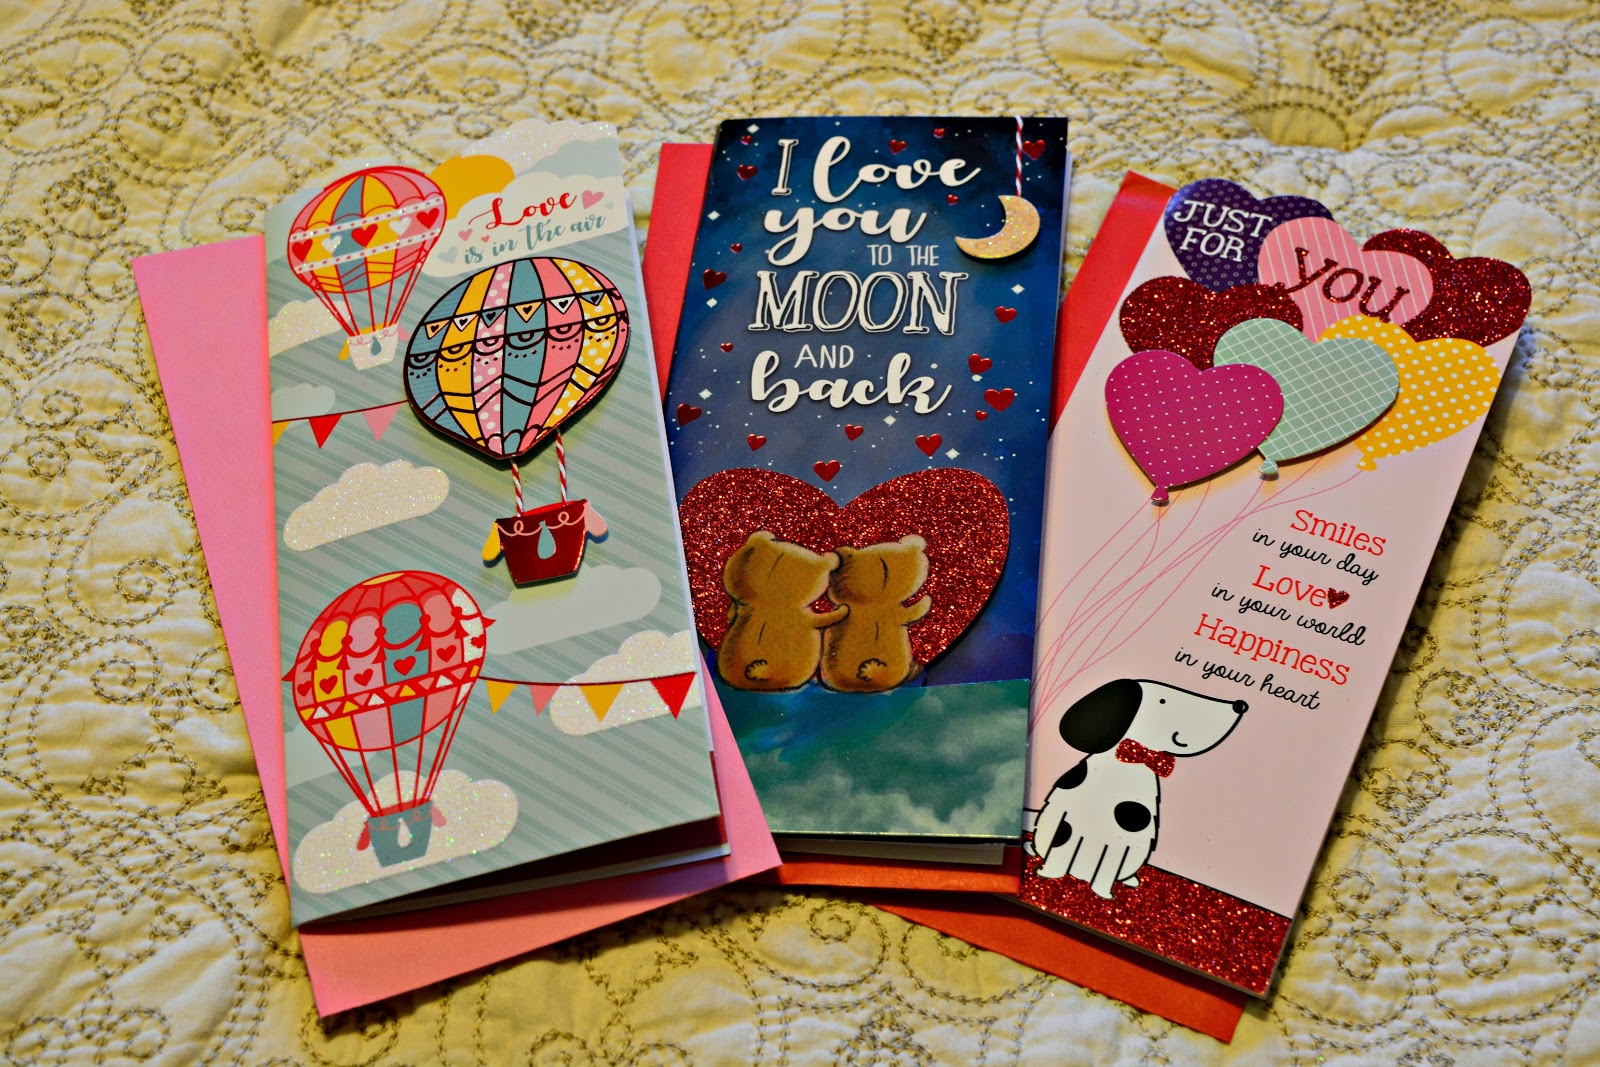 Lds missionary care package kits ideas missionary box moms in the dollar section felt envelope 100 each grey pink or teal options valentine mini card kit includes 30cards 30envelopes 300 regular store kristyandbryce Choice Image